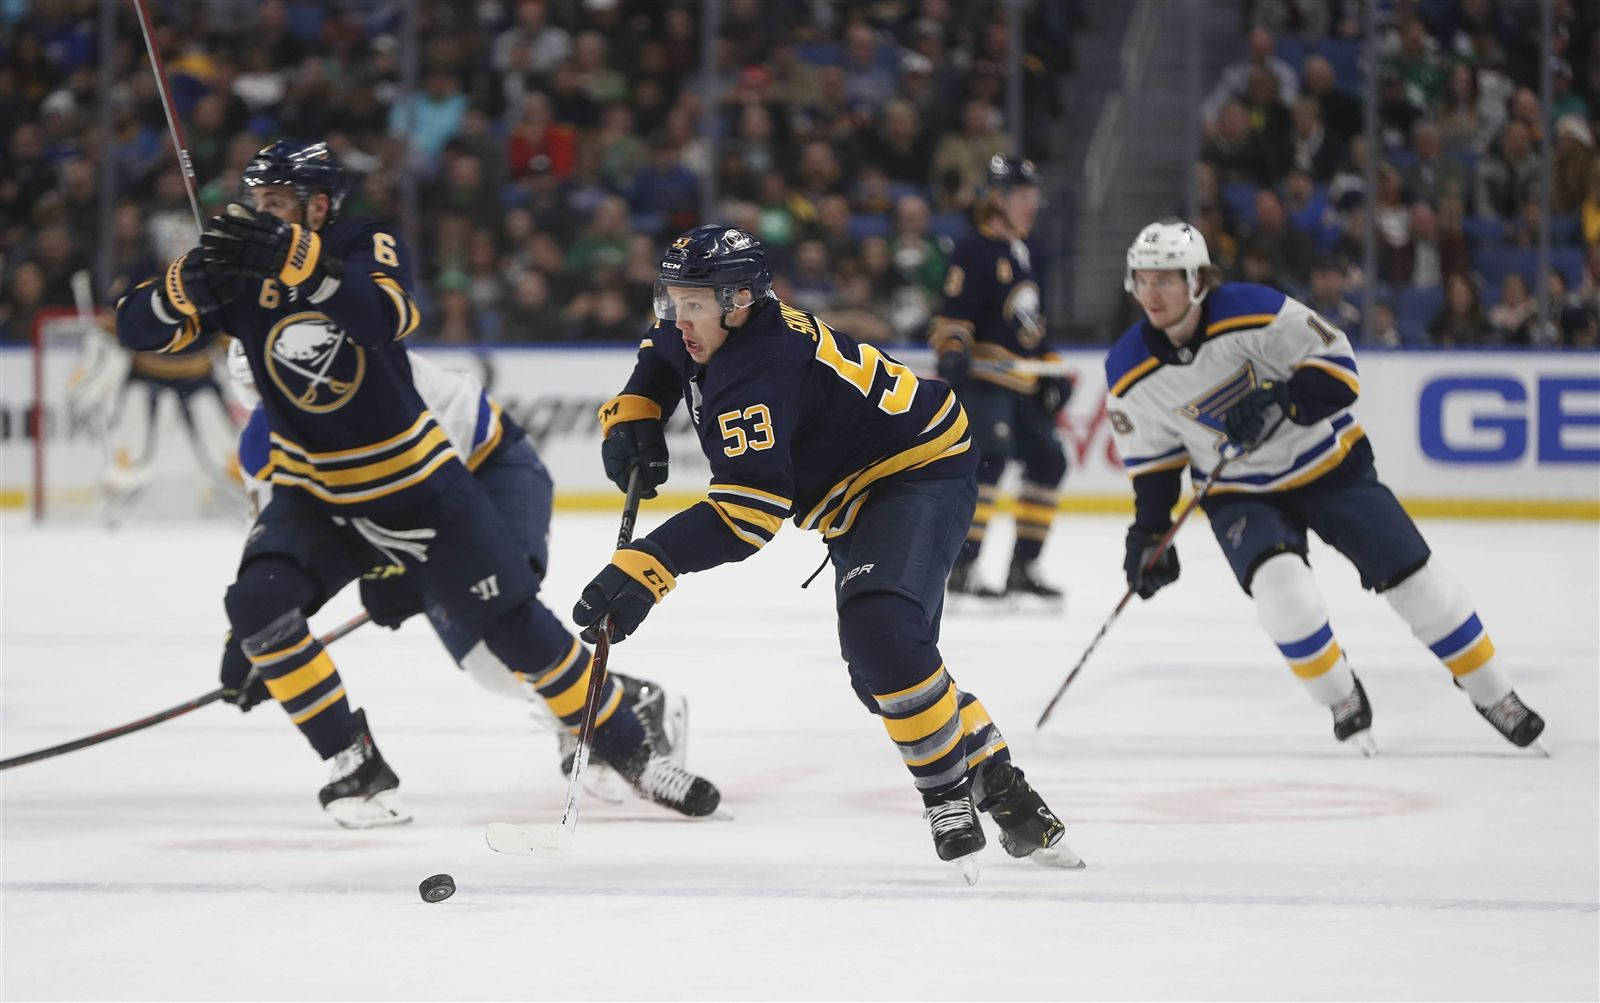 The Buffalo Sabres' Jeff Skinner attacks the zone in the first period of a game against the St. Louis Blues in the KeyBank Center on Sunday, March 17, 2019.